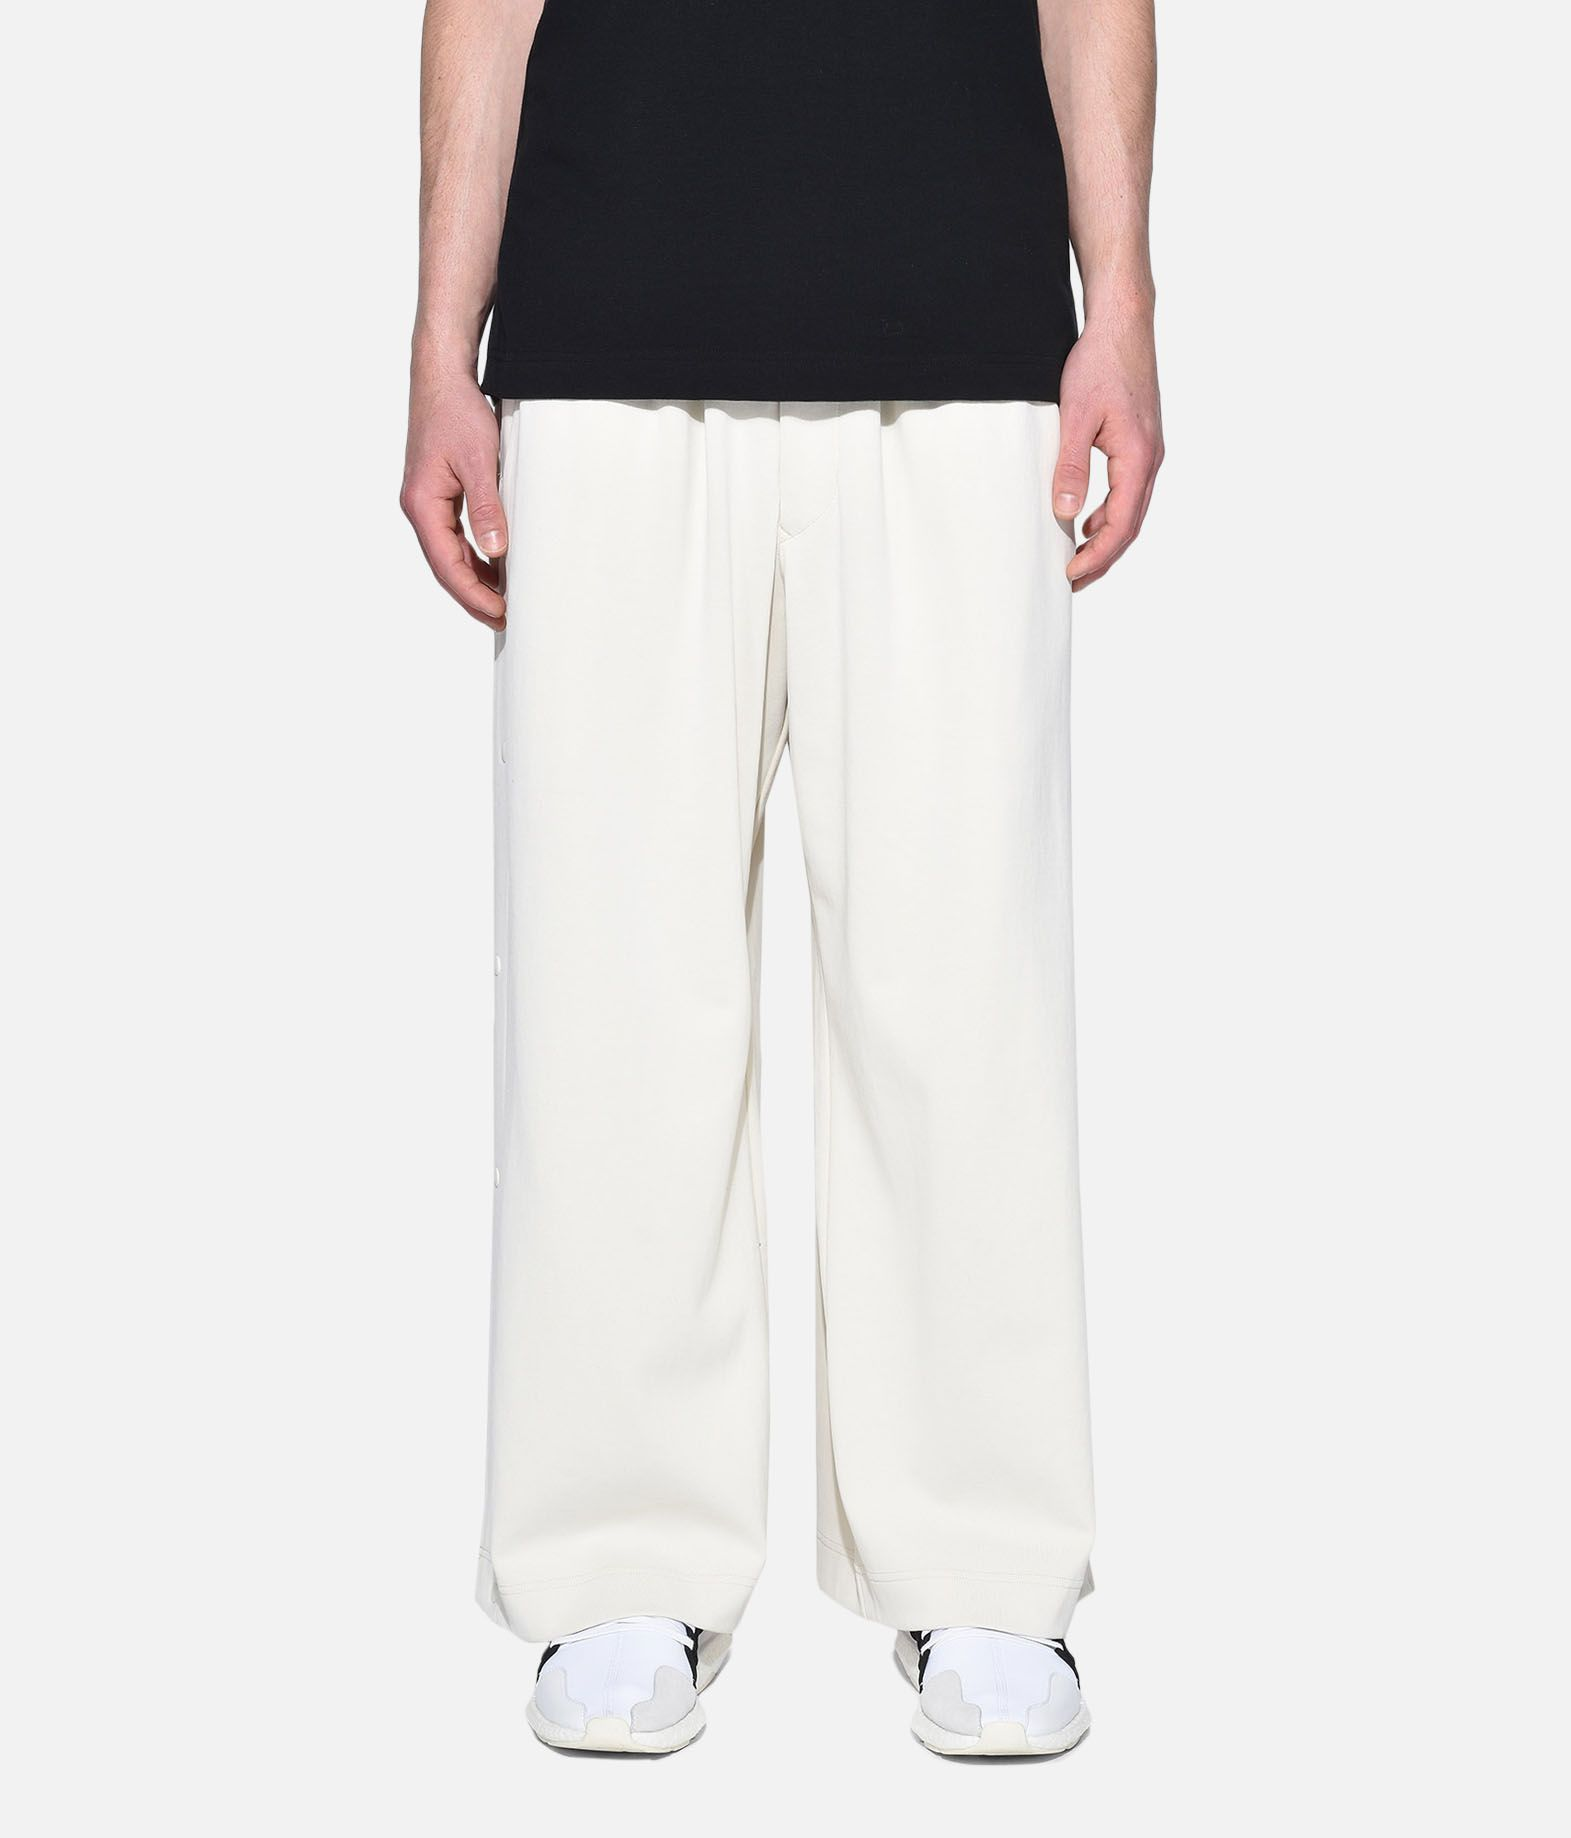 Y-3 Y-3 3-Stripes Matte Snap Track Pants Track pant Man r